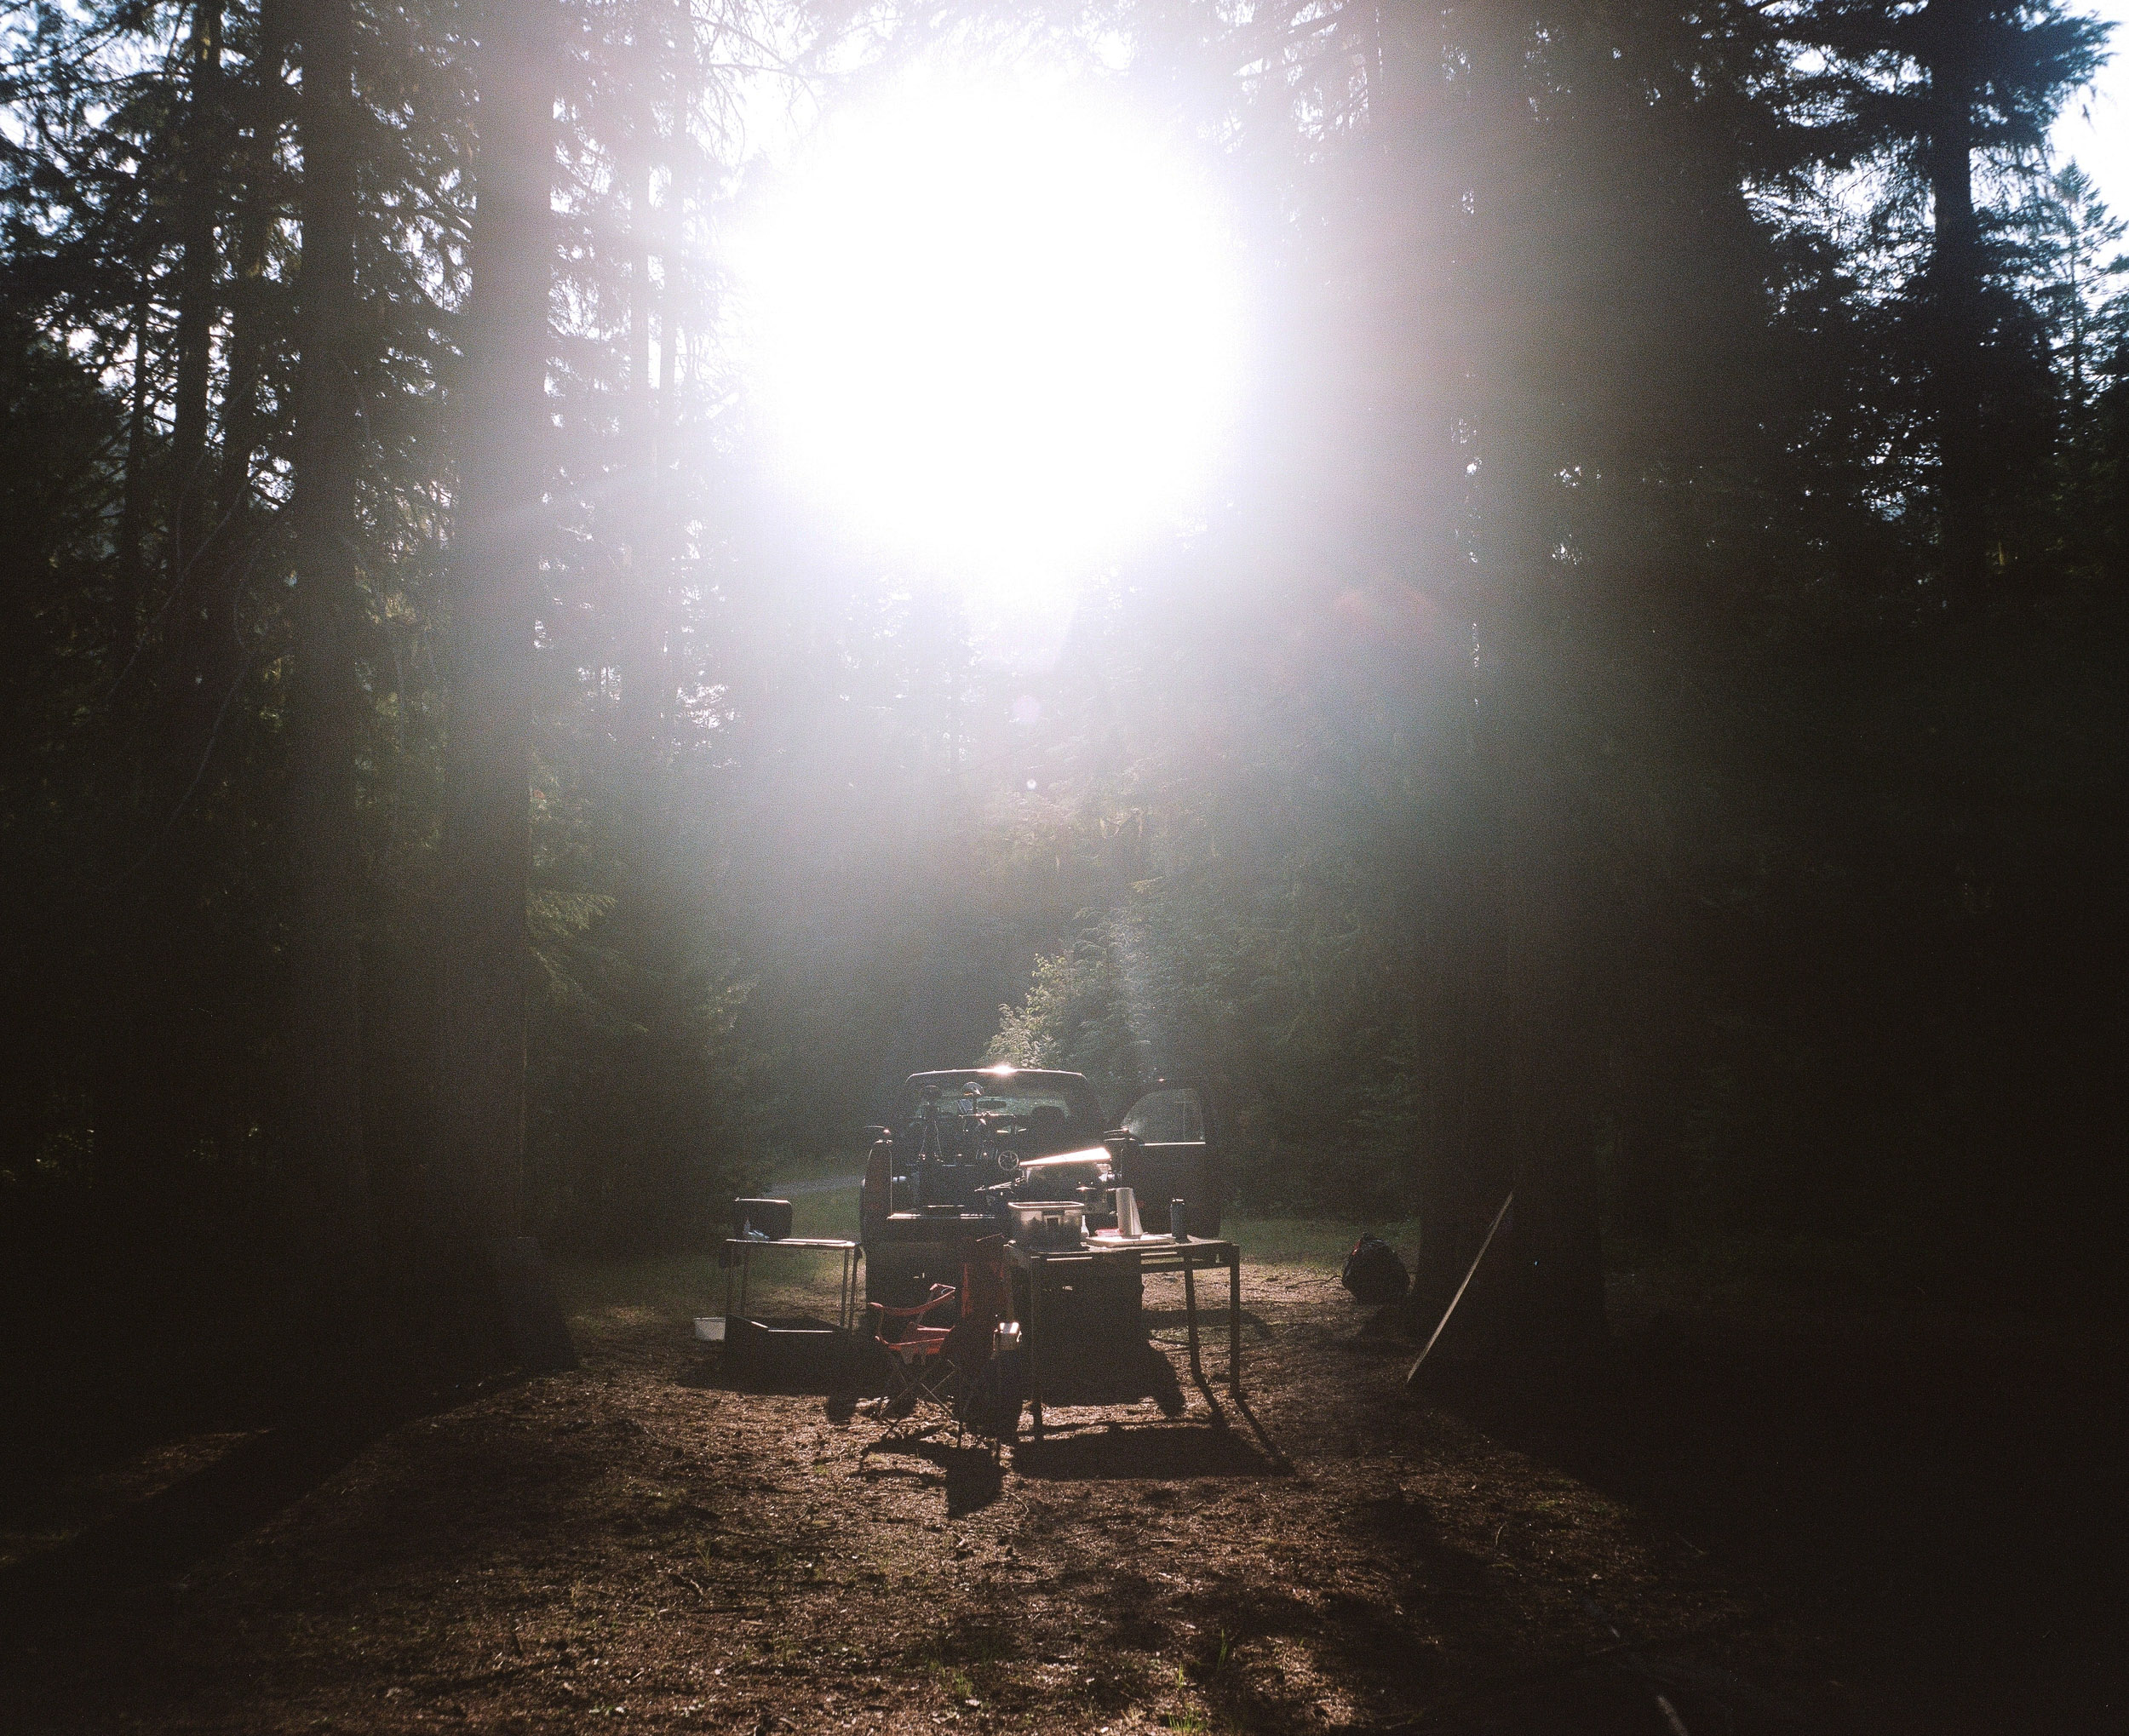 Campsite with a truck and a table and sun glare